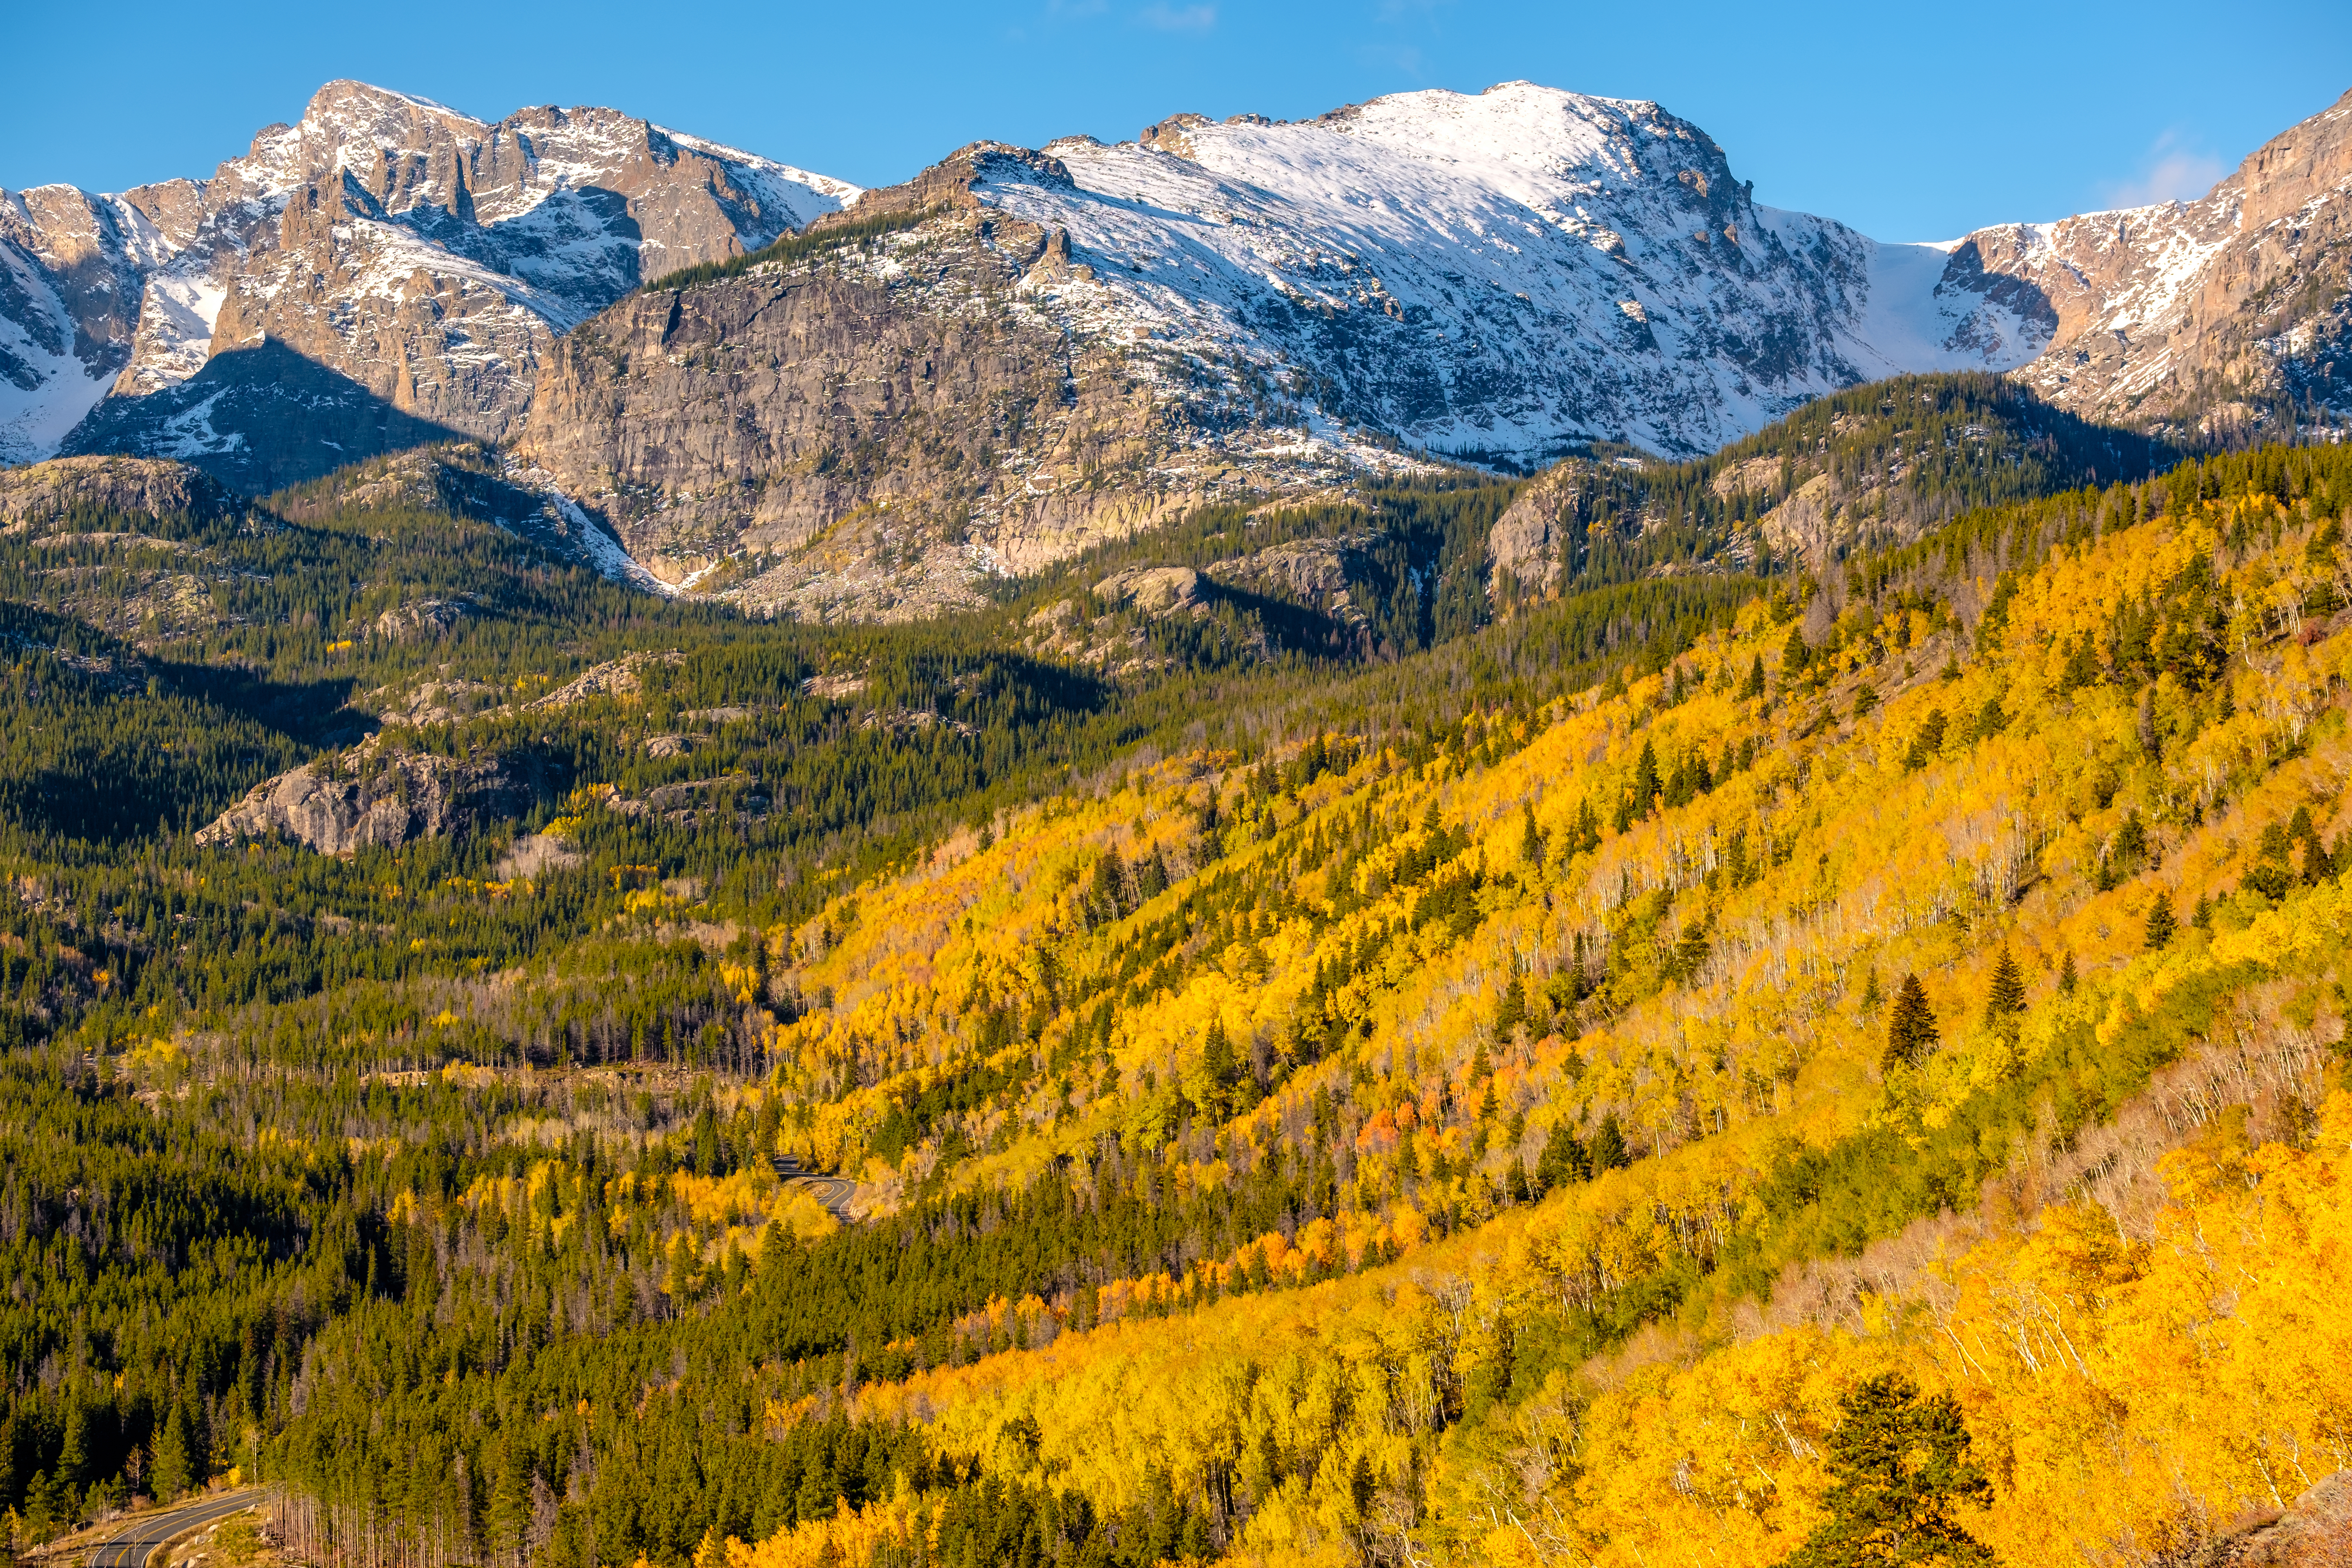 The 11 best national parks to visit in fall